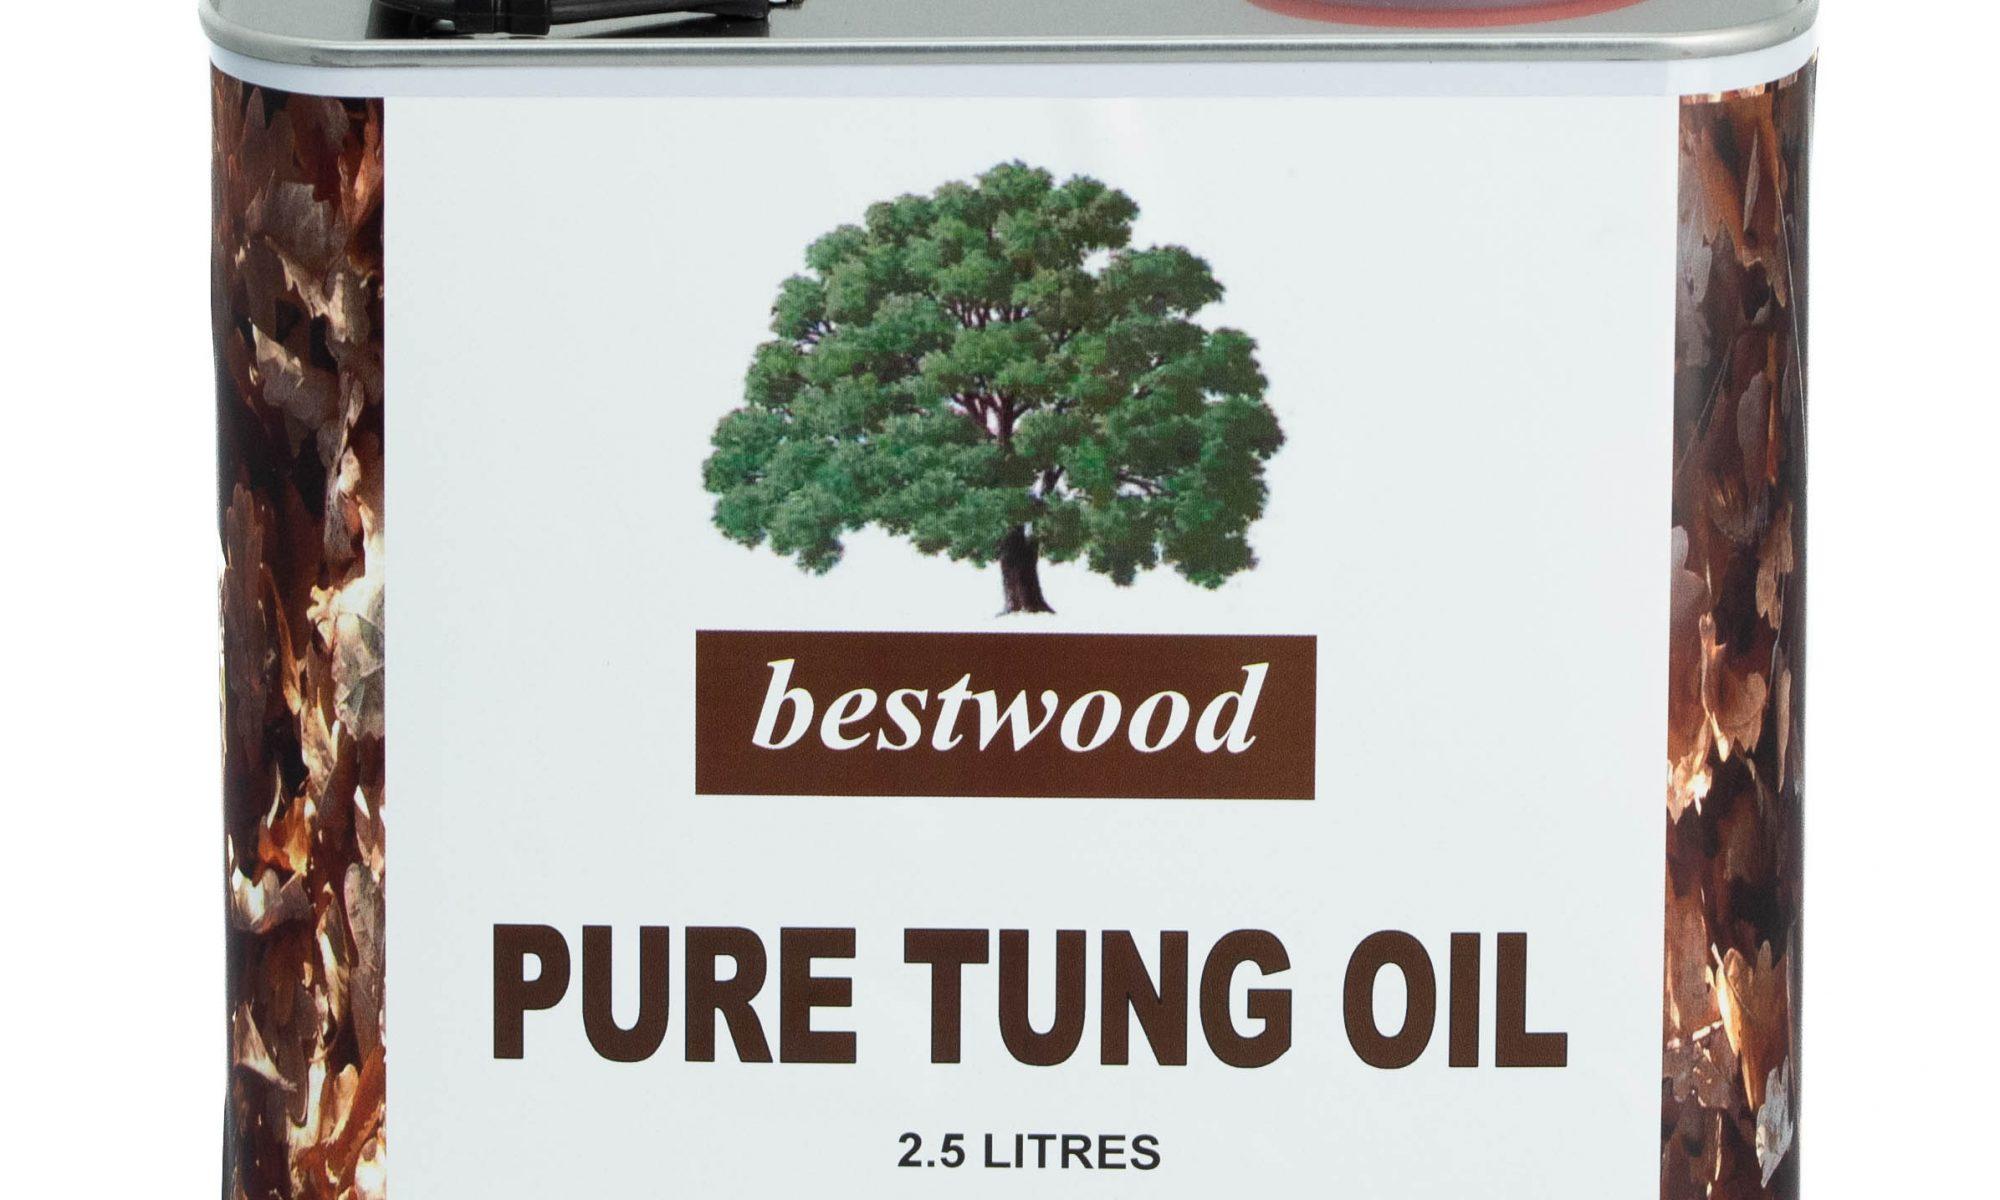 tung oil 2.5 litres